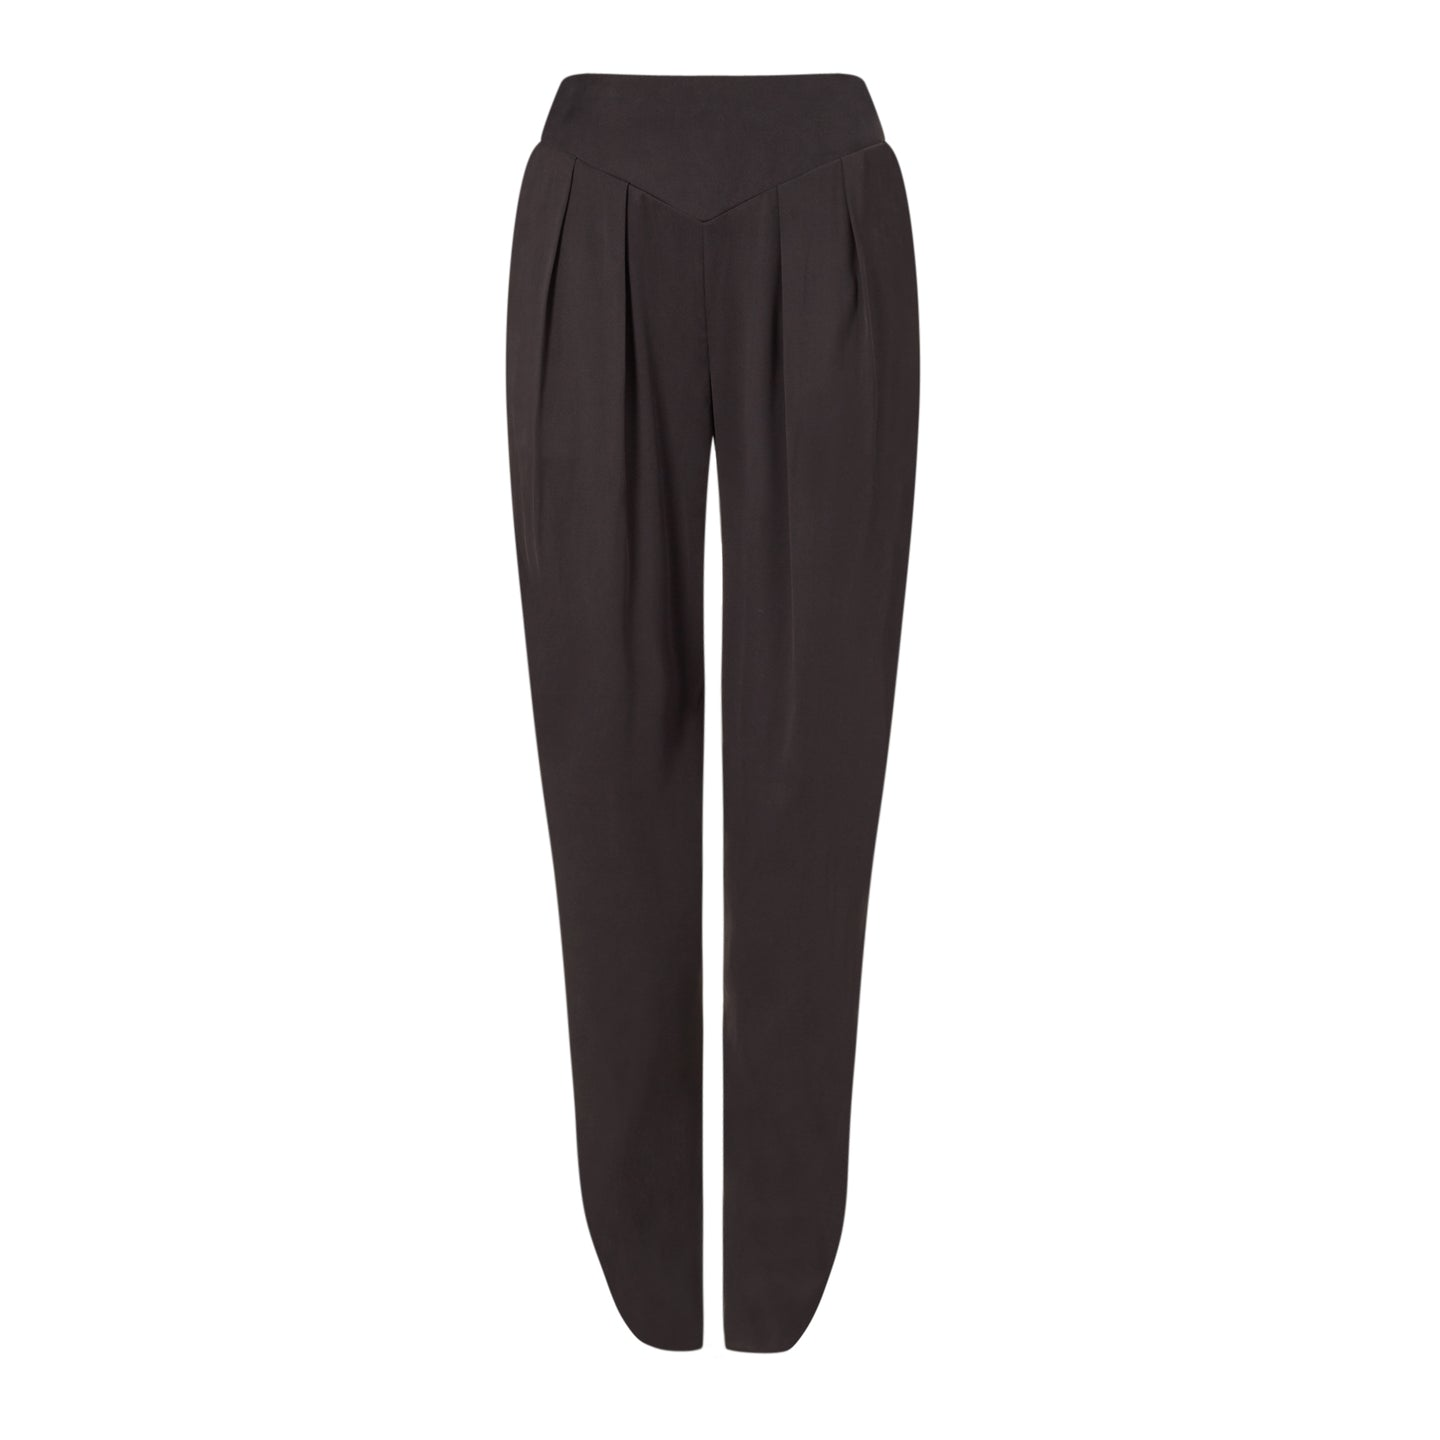 Women's Black silk tailored trousers, Natural x Lab, Reve en Vert, Matches, Mamie, Browns